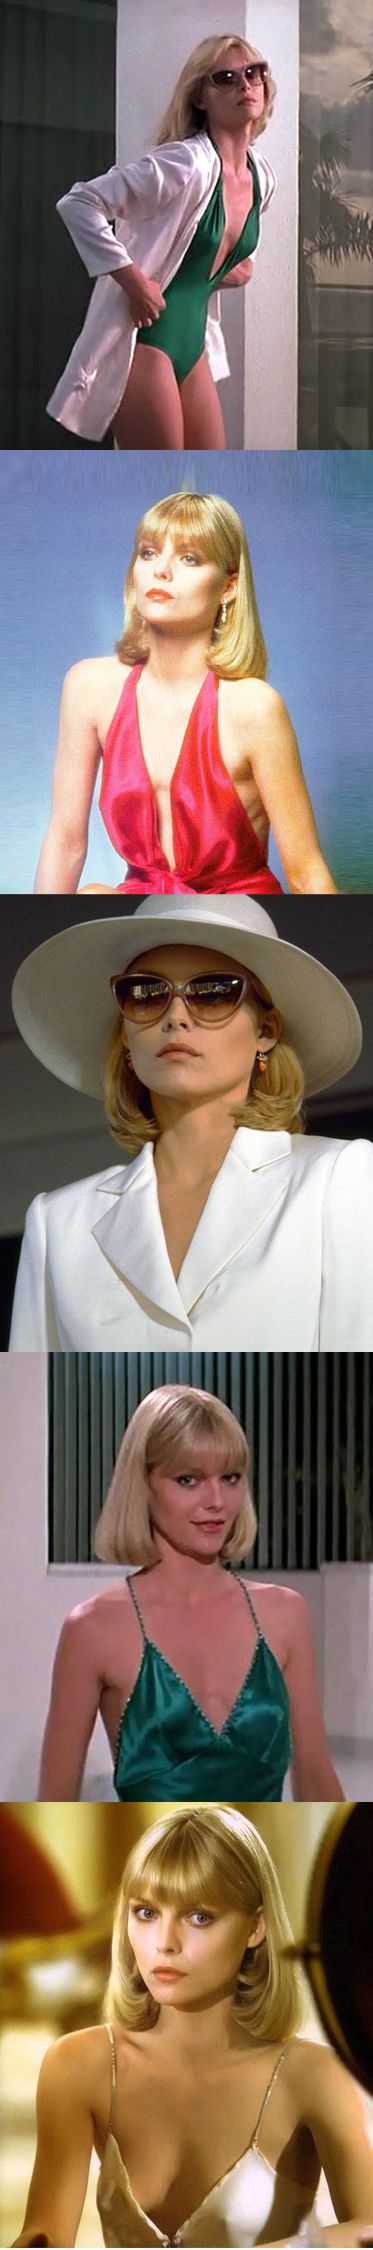 "Scarface -, Michelle Pfeiffer played the girl everyone wanted ….It proved to b the breakout role she needed after her film debut in the dismal ""Grease 2"" movie."